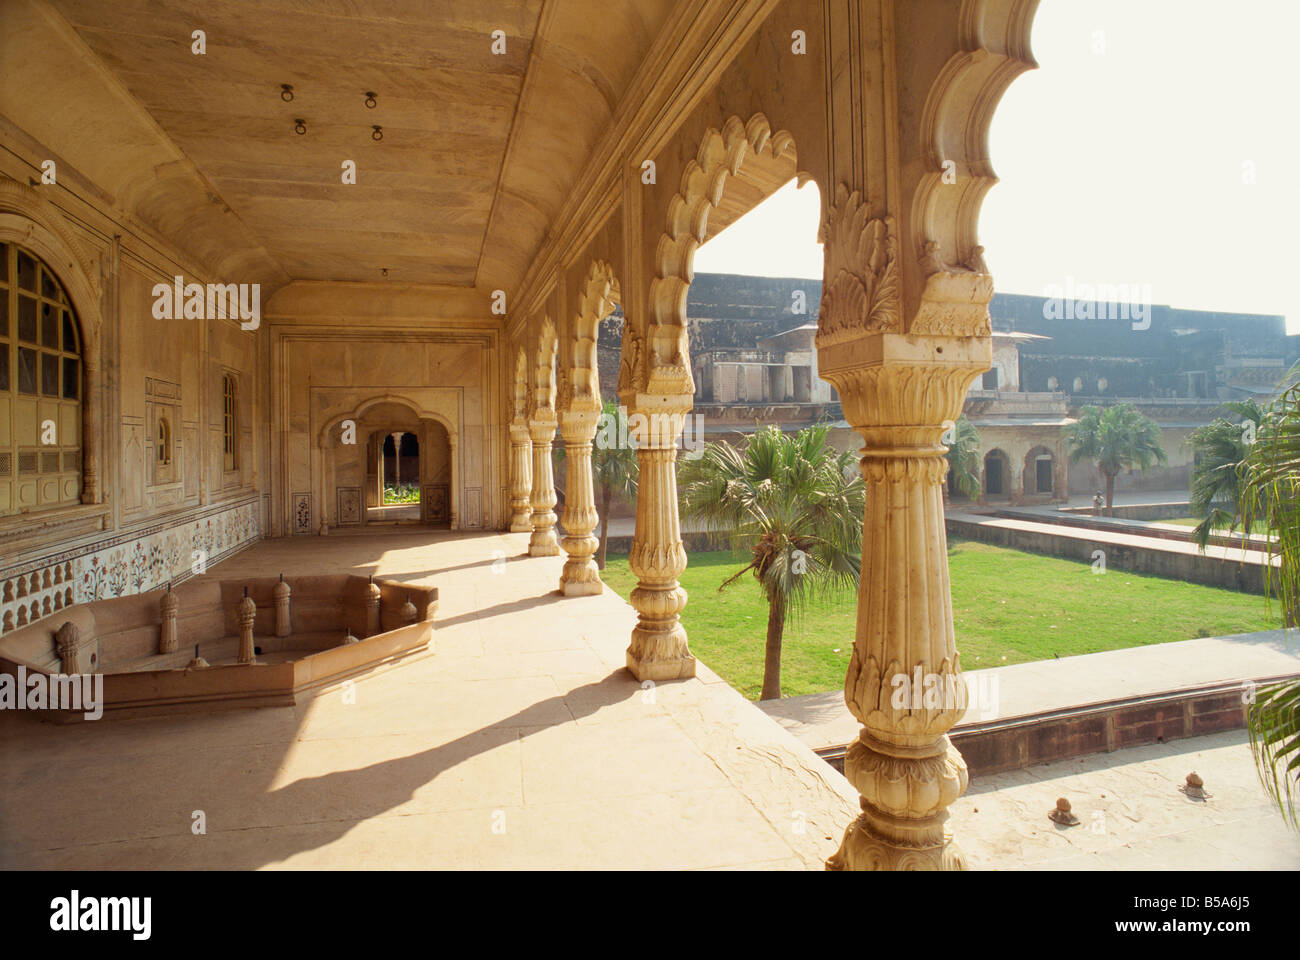 Summer Palace built in 1768 with over 2000 fountains Deeg Rajasthan state India Asia - Stock Image